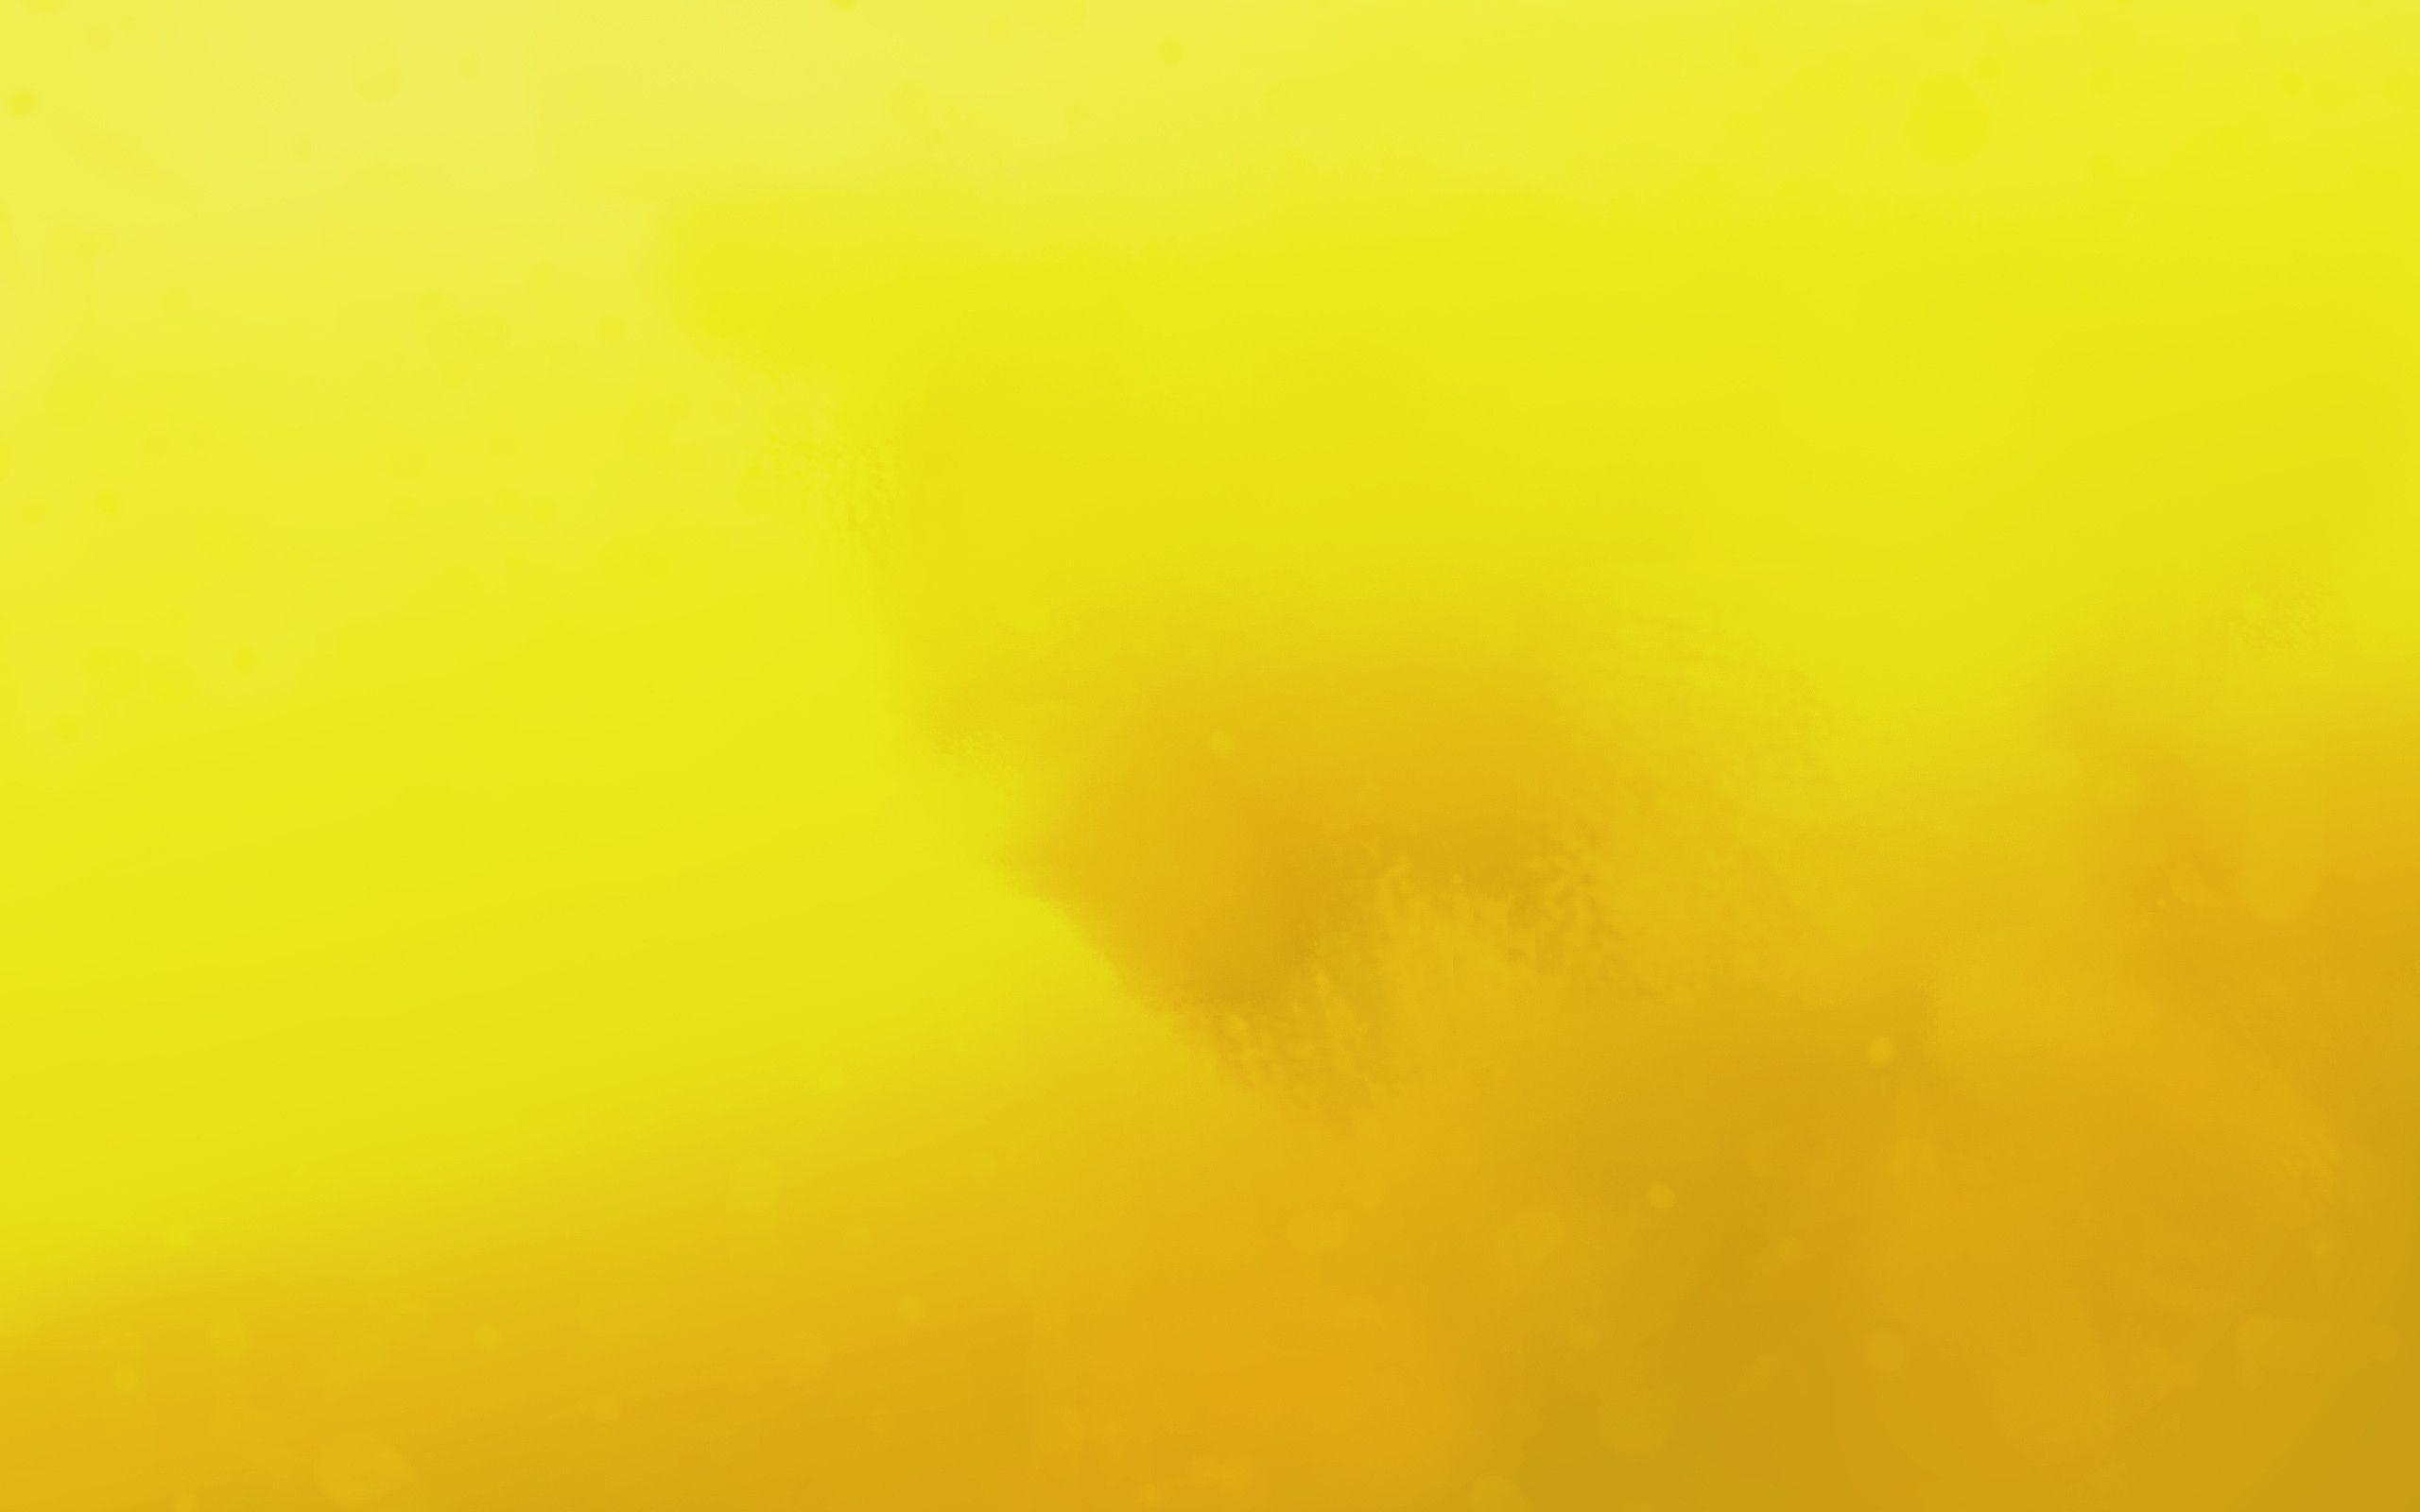 Yellow Wallpapers 11633 Hd Wallpapers | Areahd.